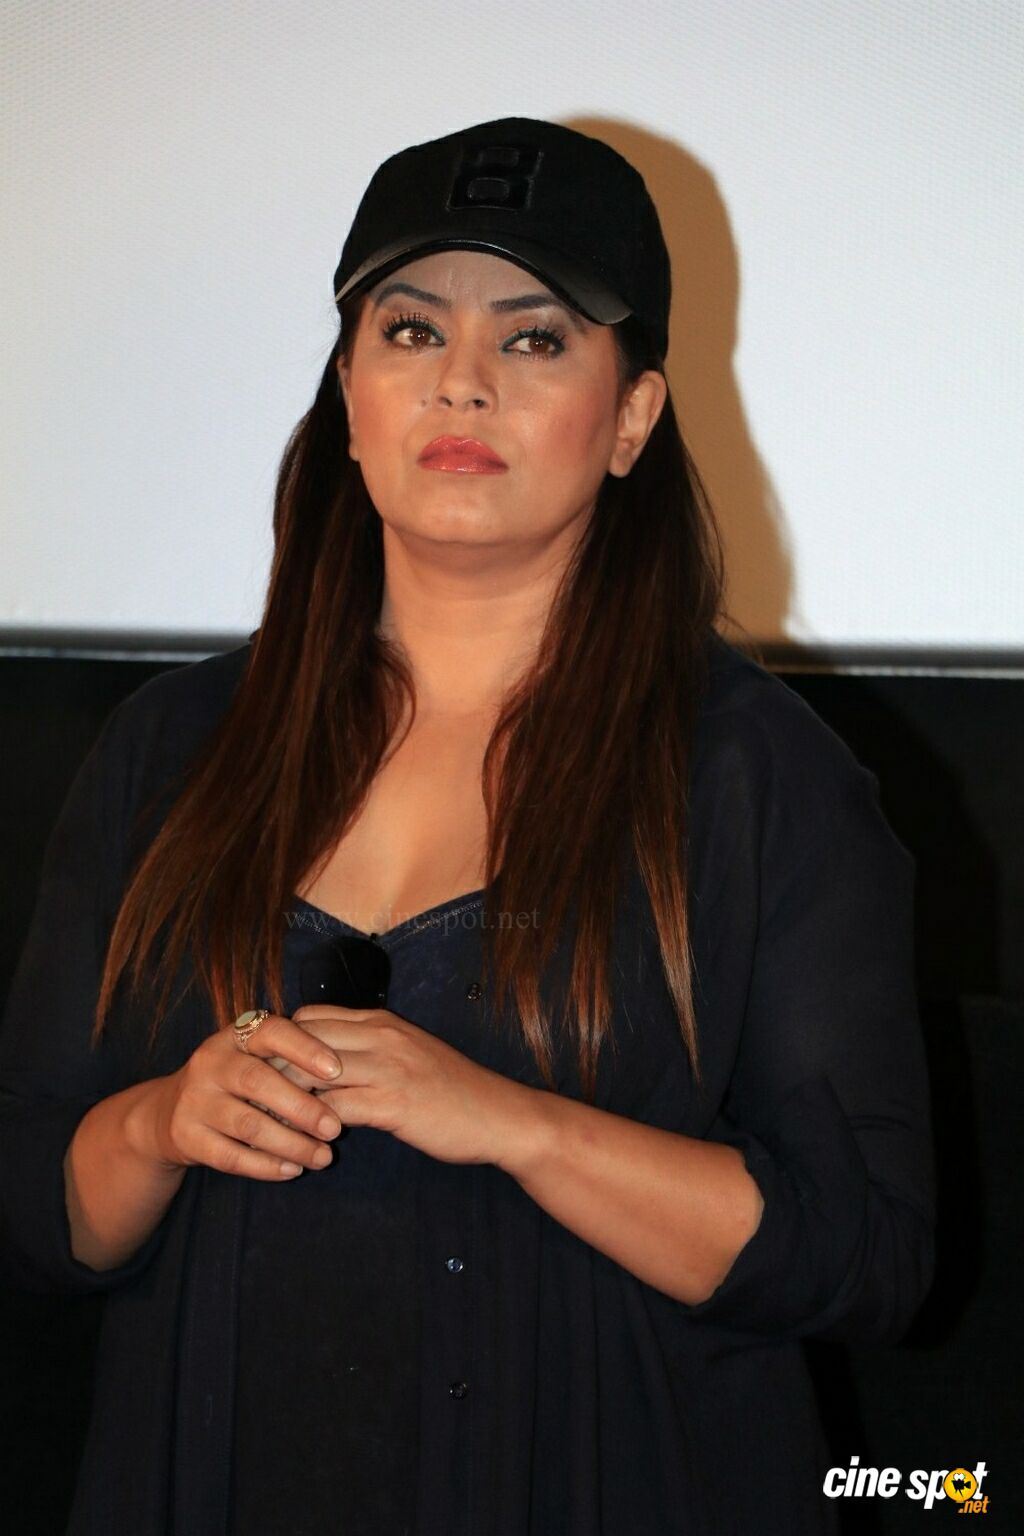 mahima chaudhary fucking photos